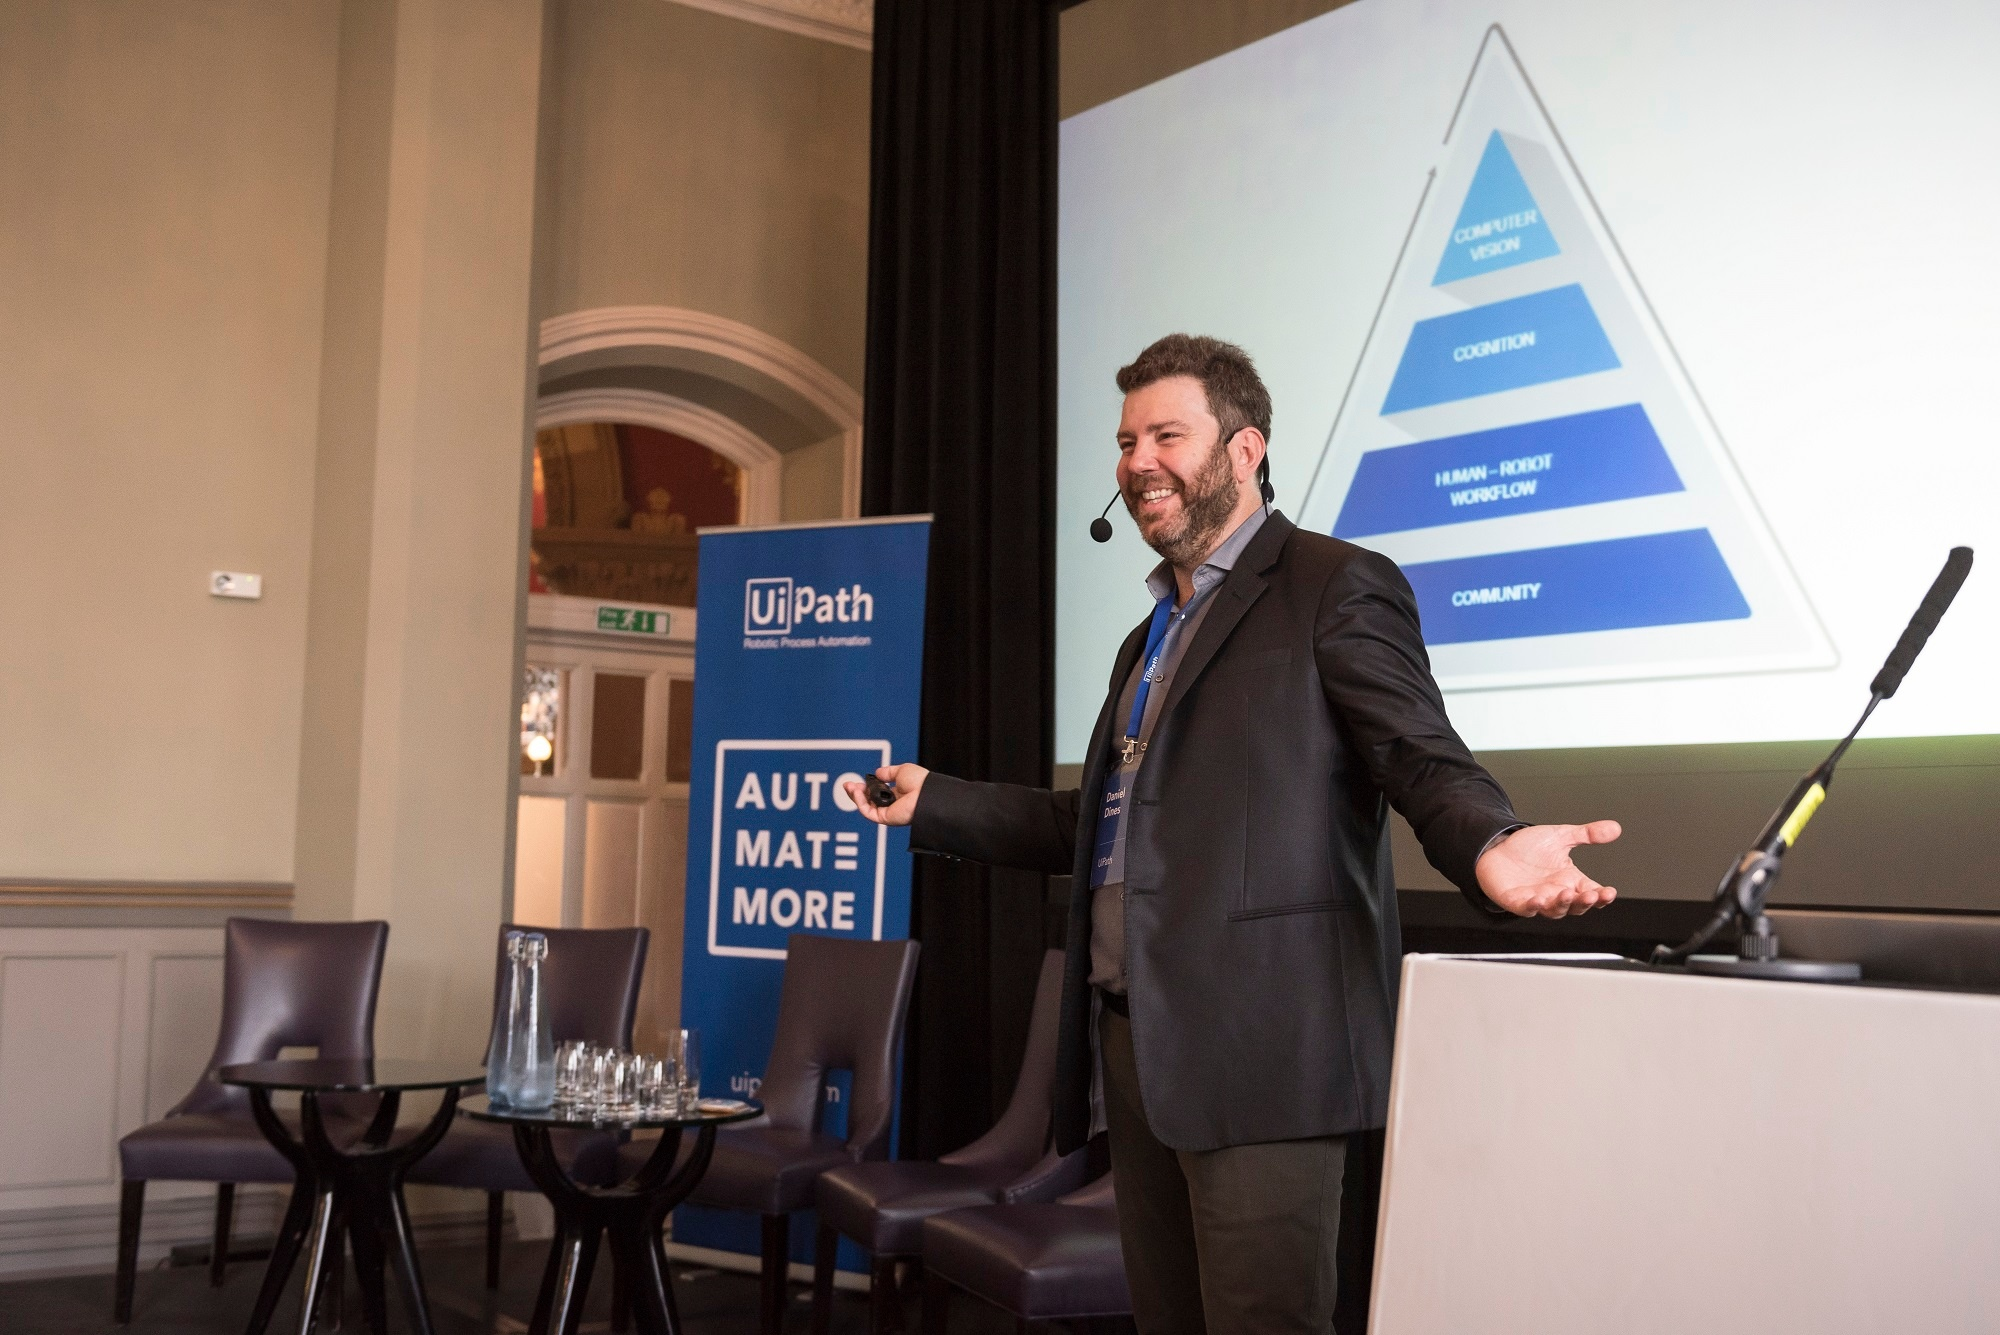 UiPath: Last Month in Review (April 2017)